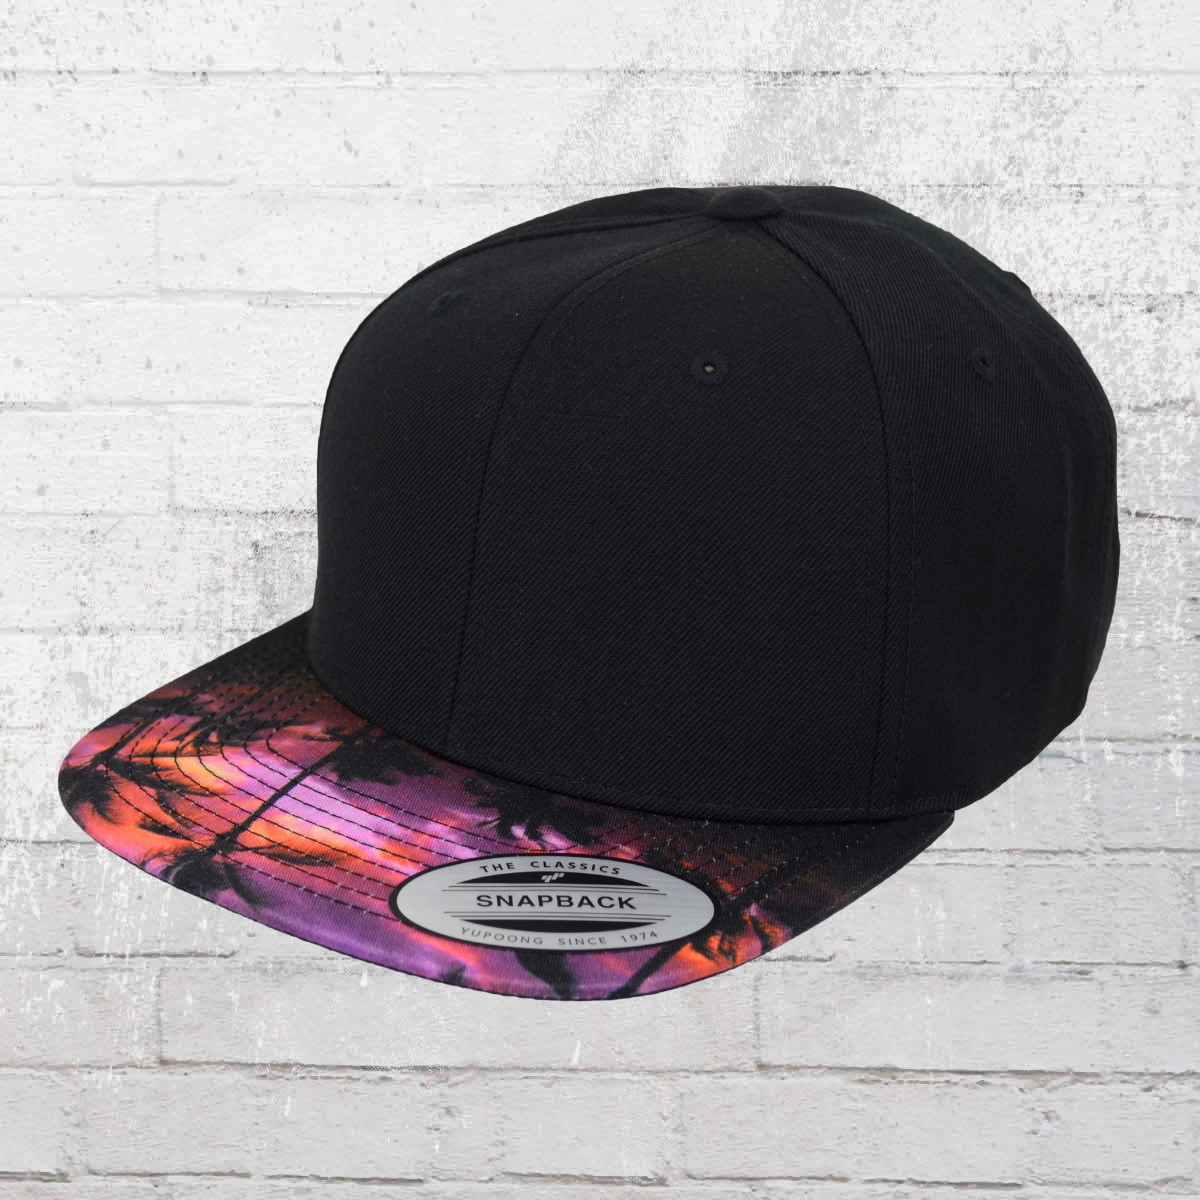 79f11c8248d Yupoong by Flexfit Snapback Hat Sunset Peak black multi